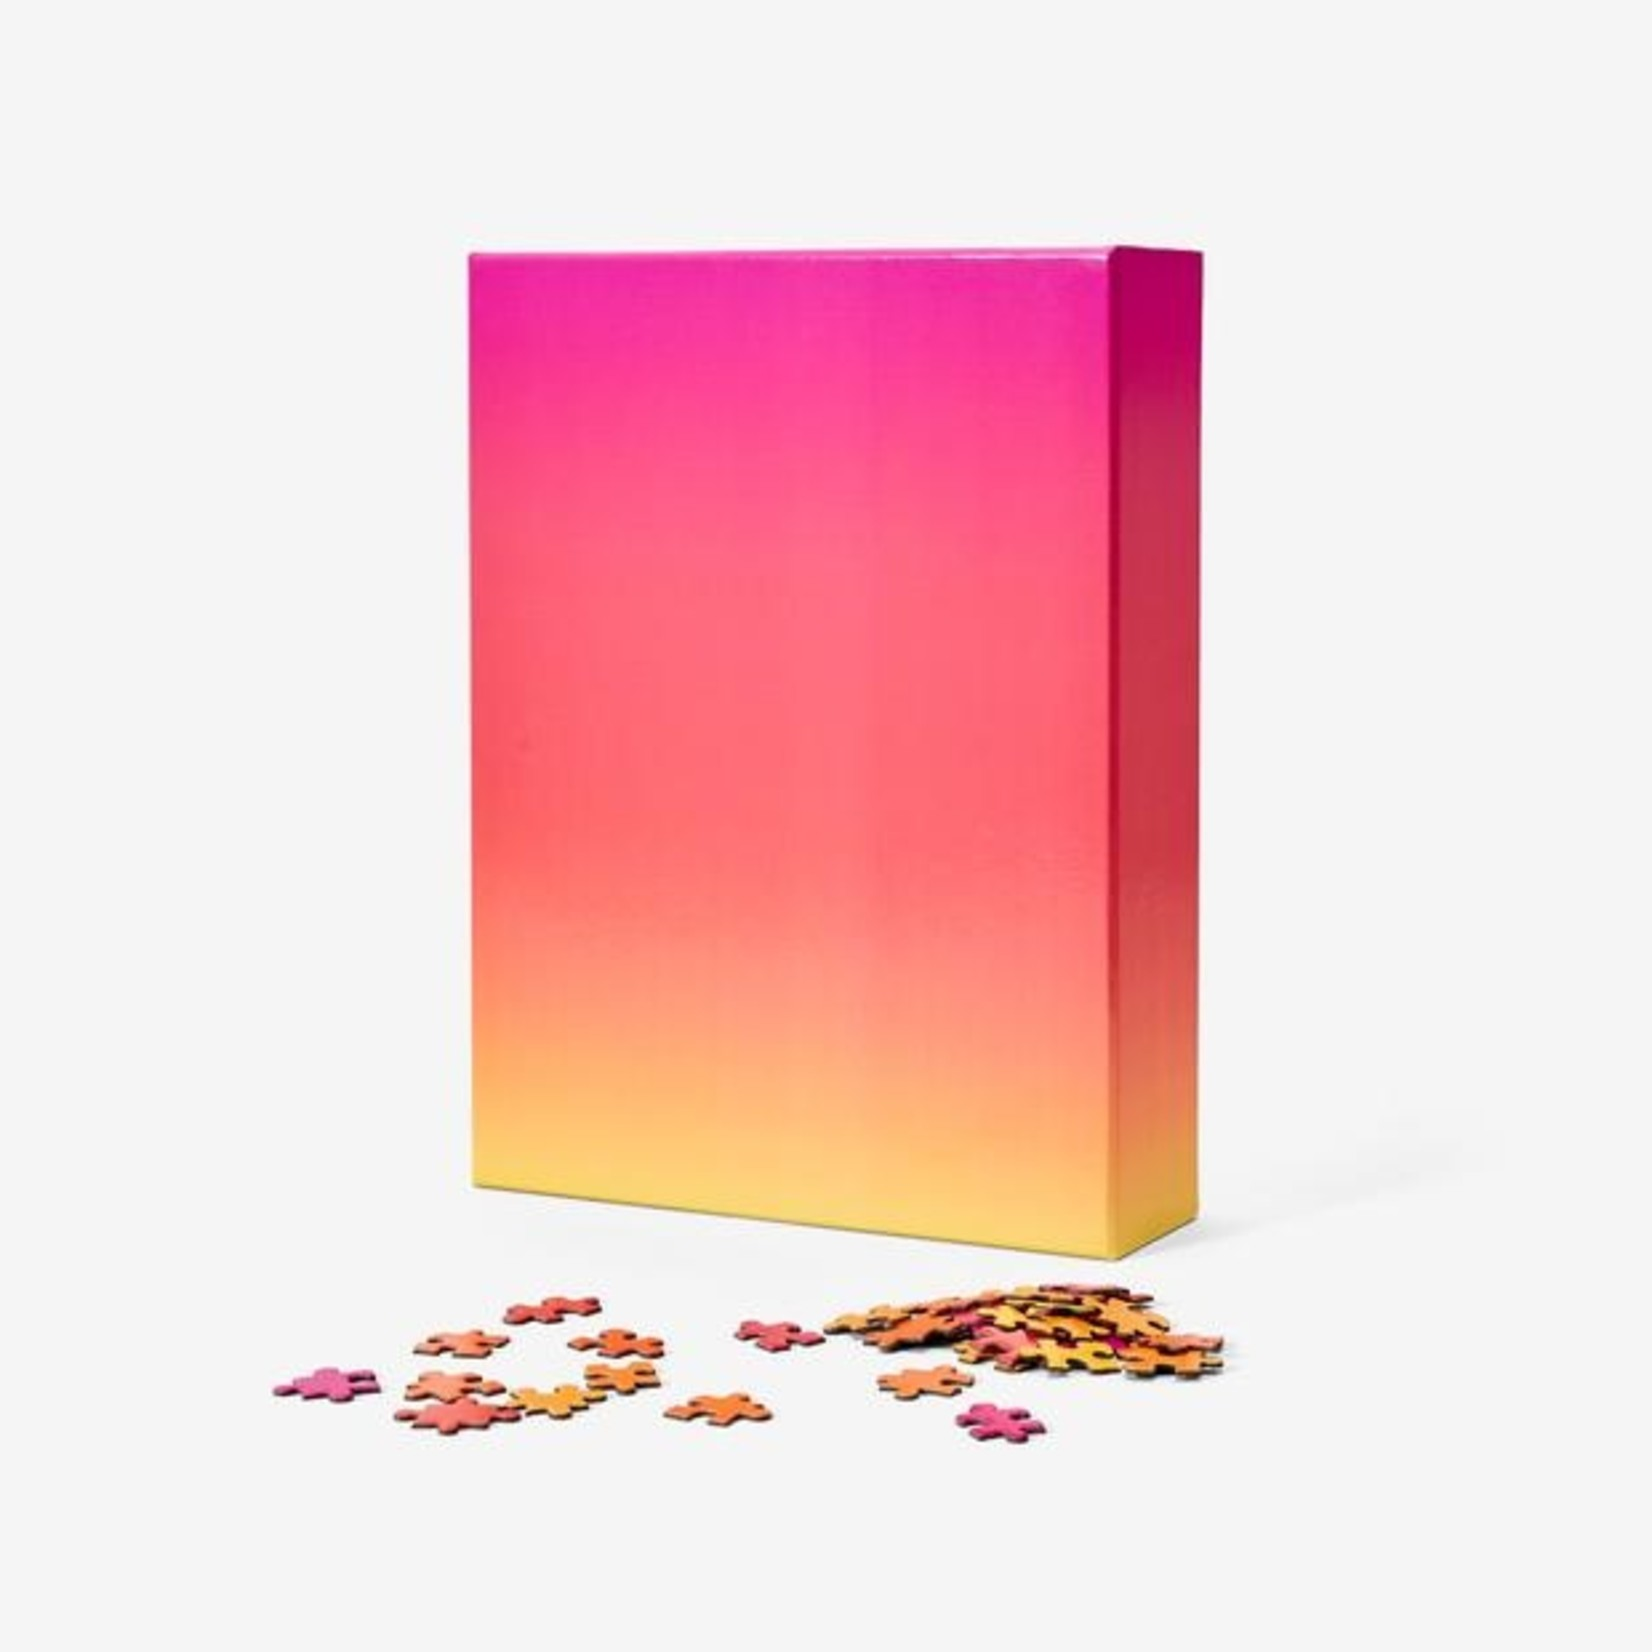 Areaware Areaware Gradient Puzzle Large Pink/Yellow